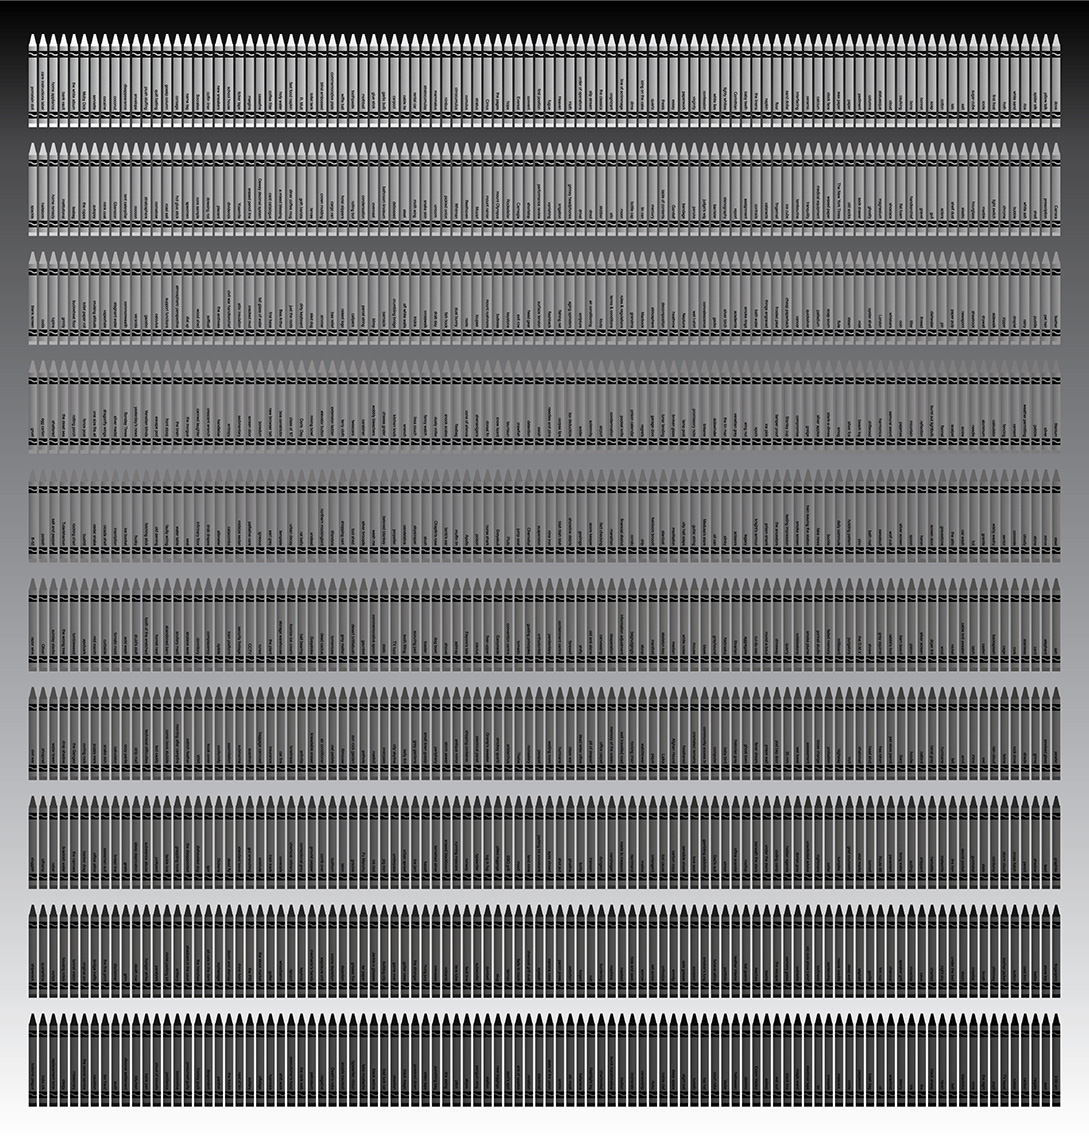 1000-Shades-Of-Grey-2018-archival-inkjet-print-on-paper-45x43-inches